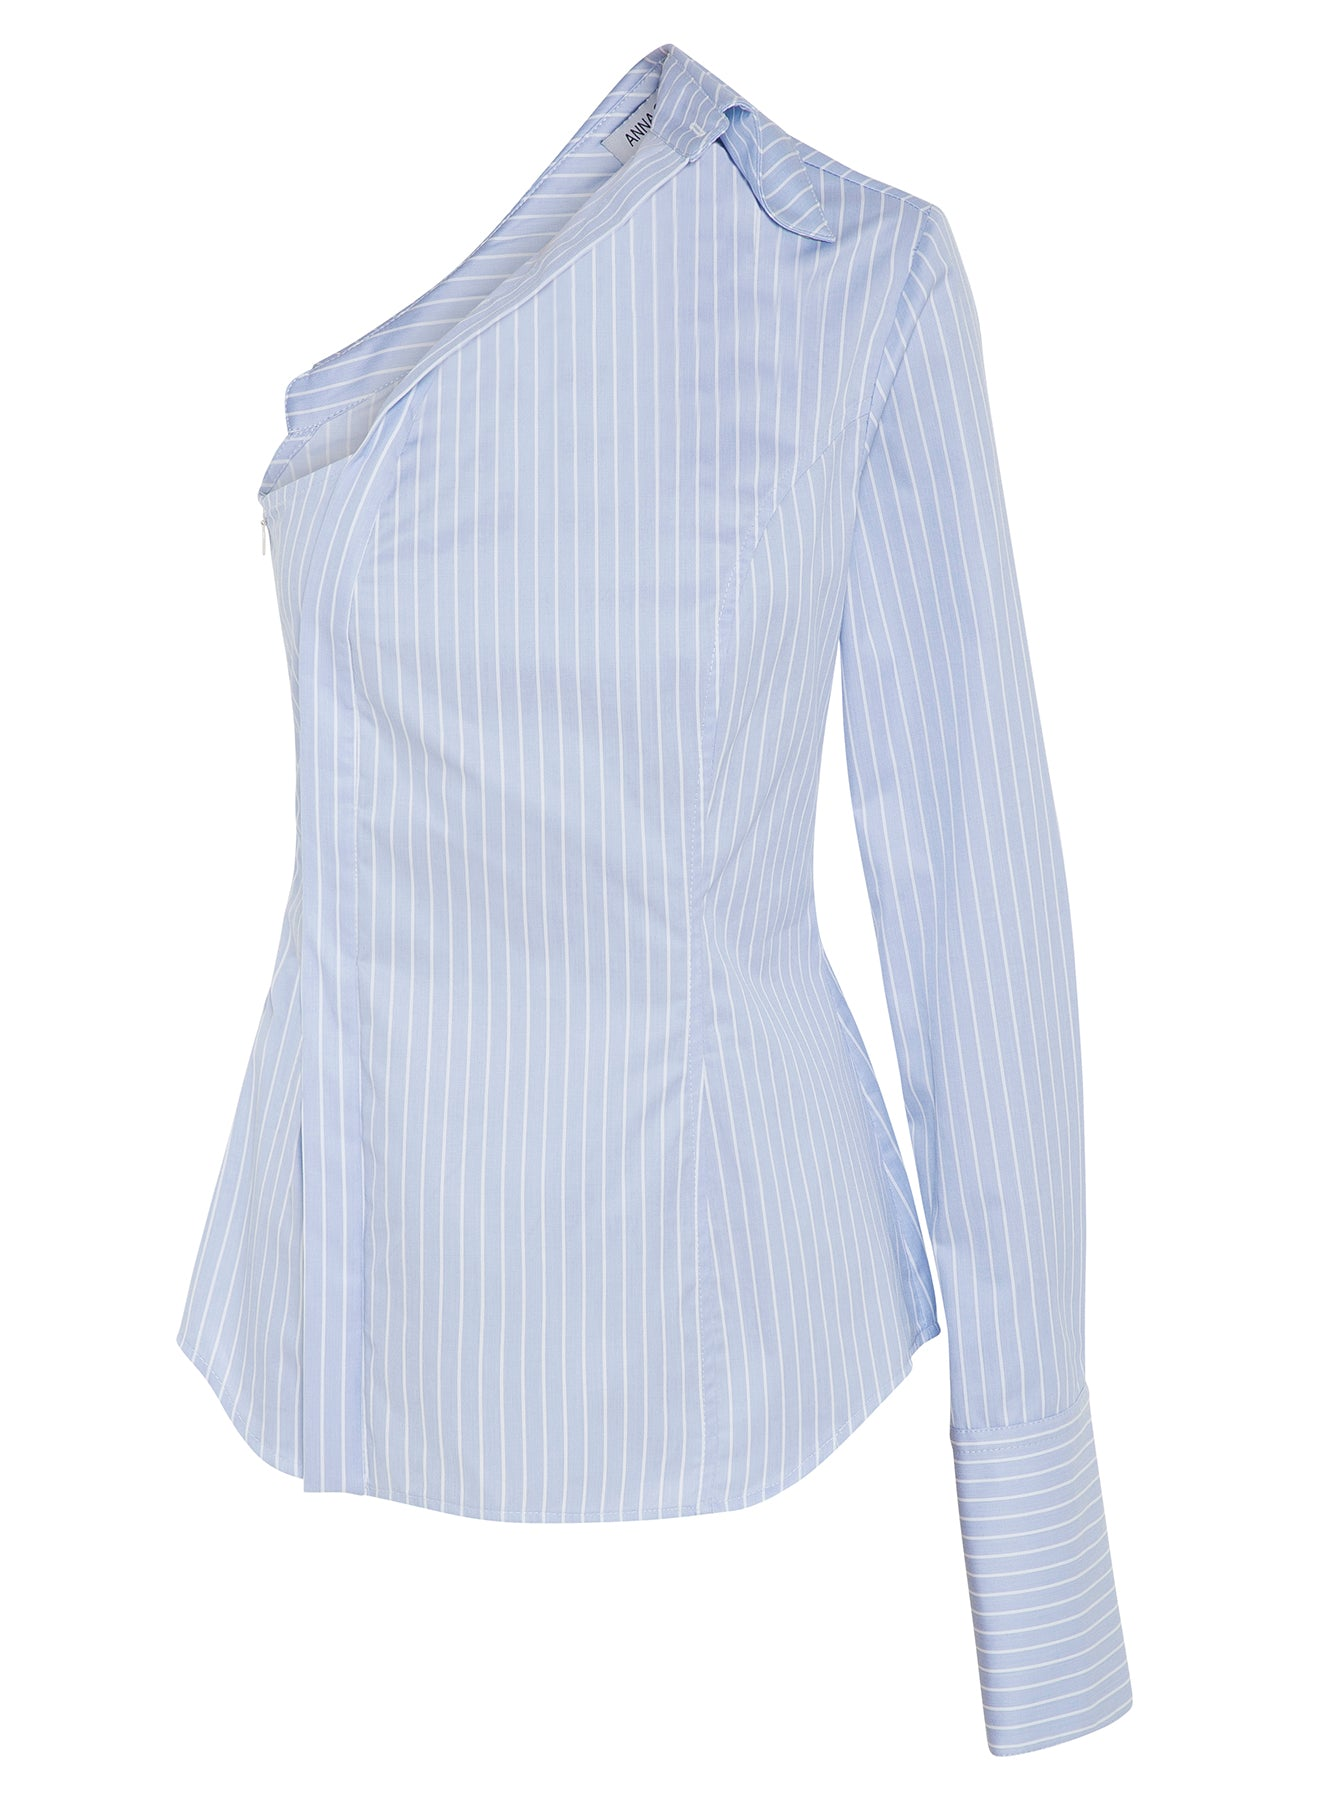 EVIE Top (BLUE STRIPE)